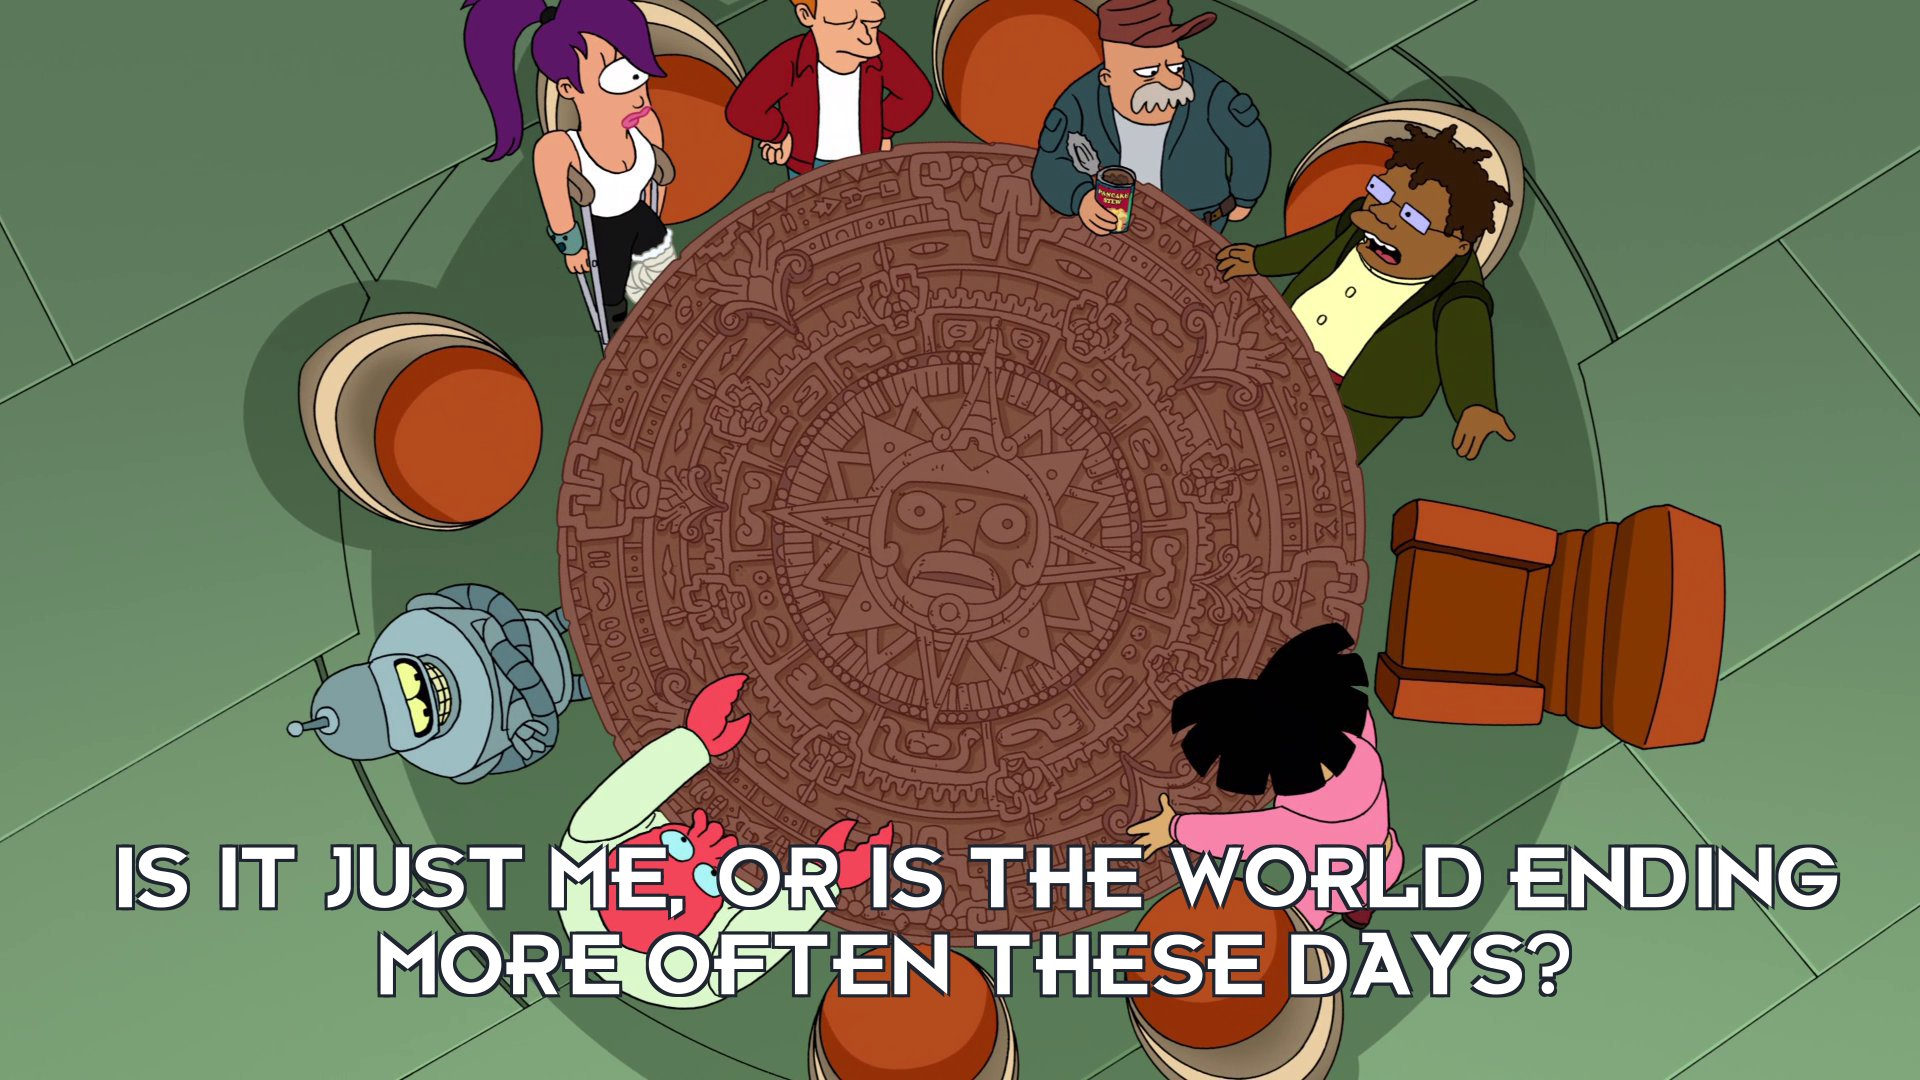 Hermes Conrad: Is it just me, or is the world ending more often these days?